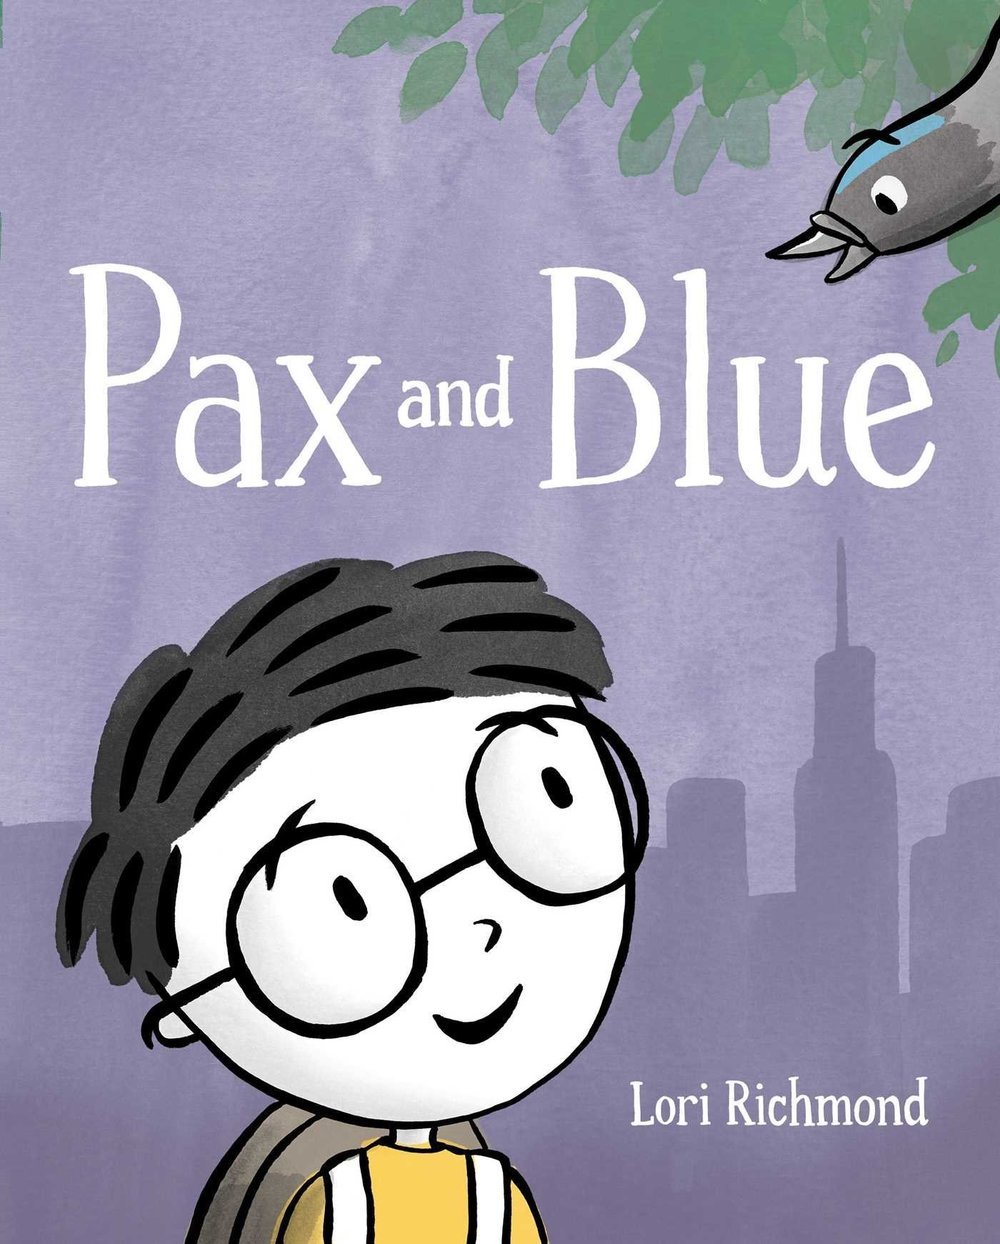 Richmond, Lori 2017_03 - PAX AND BLUE - PB - RLM LK.jpg